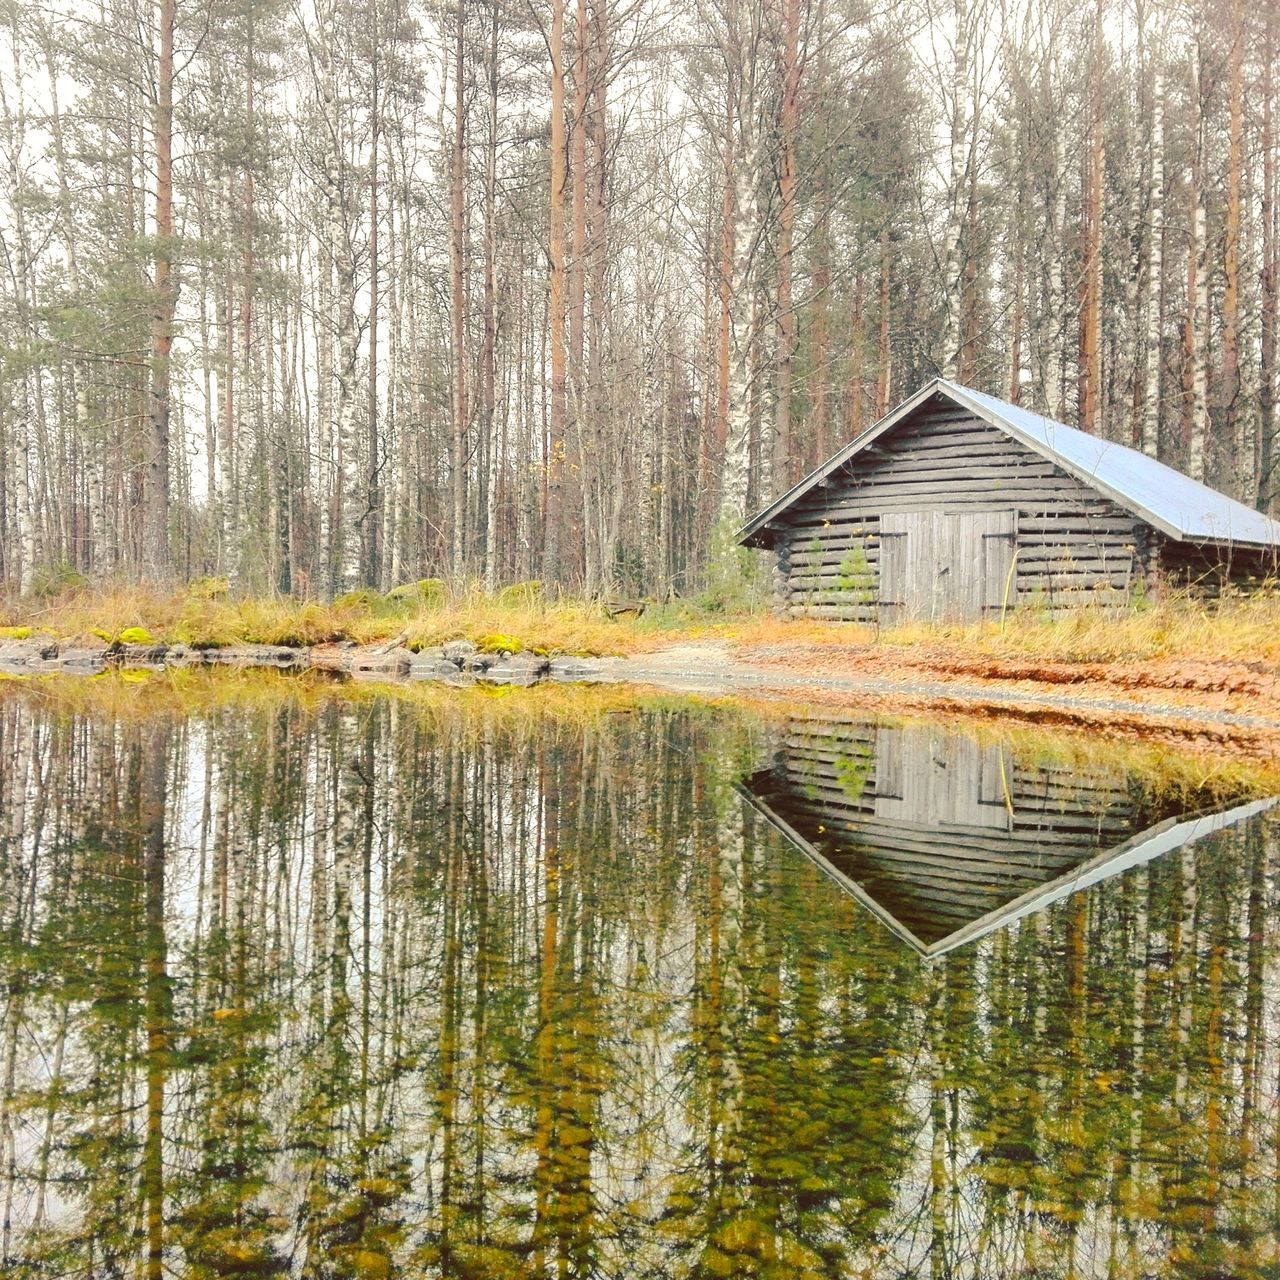 autumn Lake Reflection Finnish Nature Nature Day Water Photography Photographer Beauty In Nature Colorful